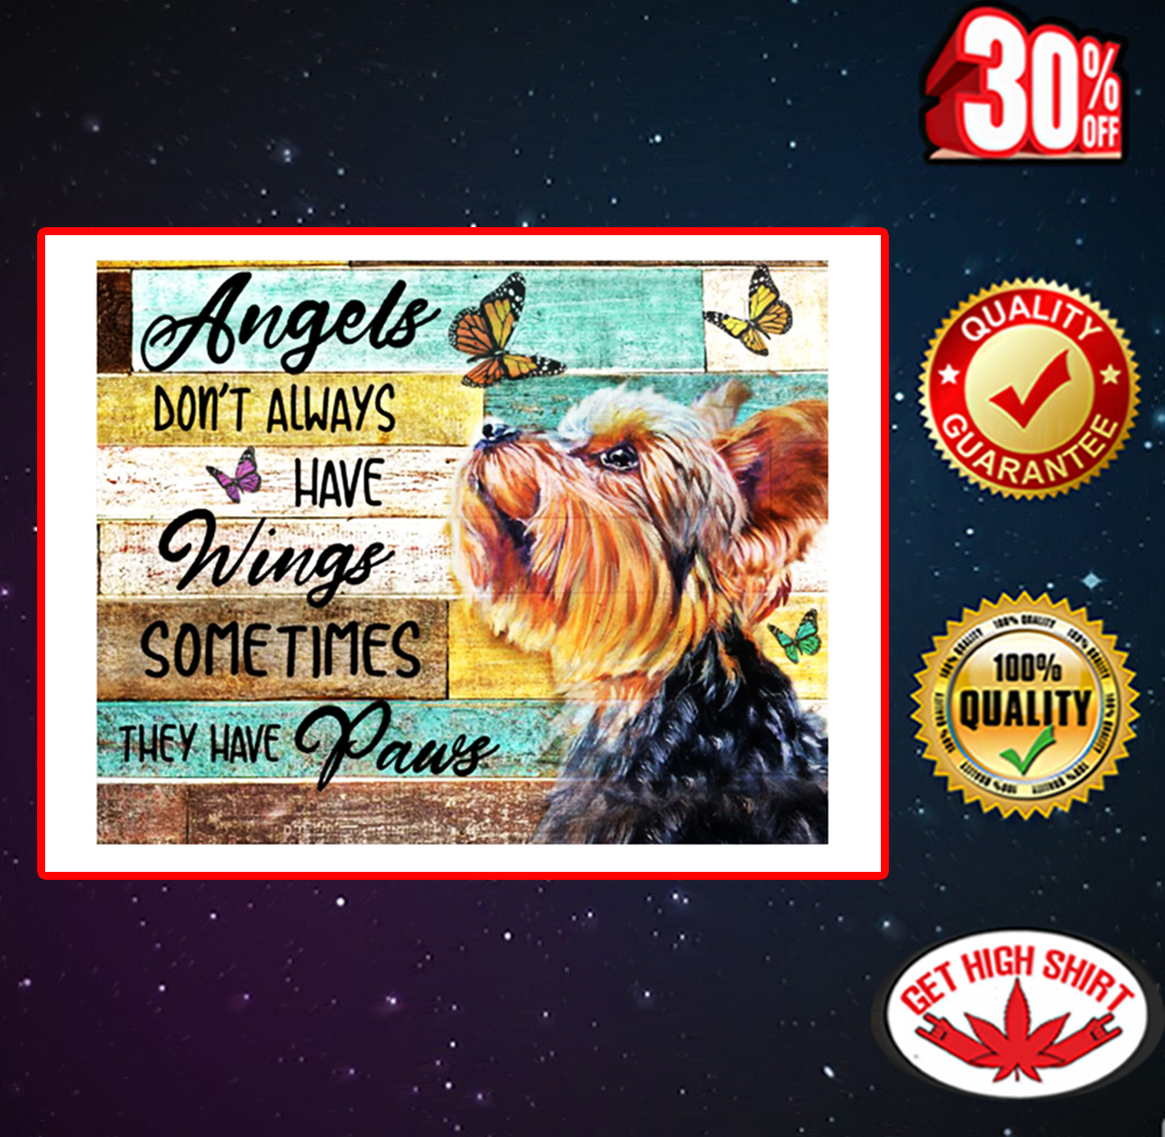 Yorkie Angels don't always have wings sometimes they have paus poster 17x11